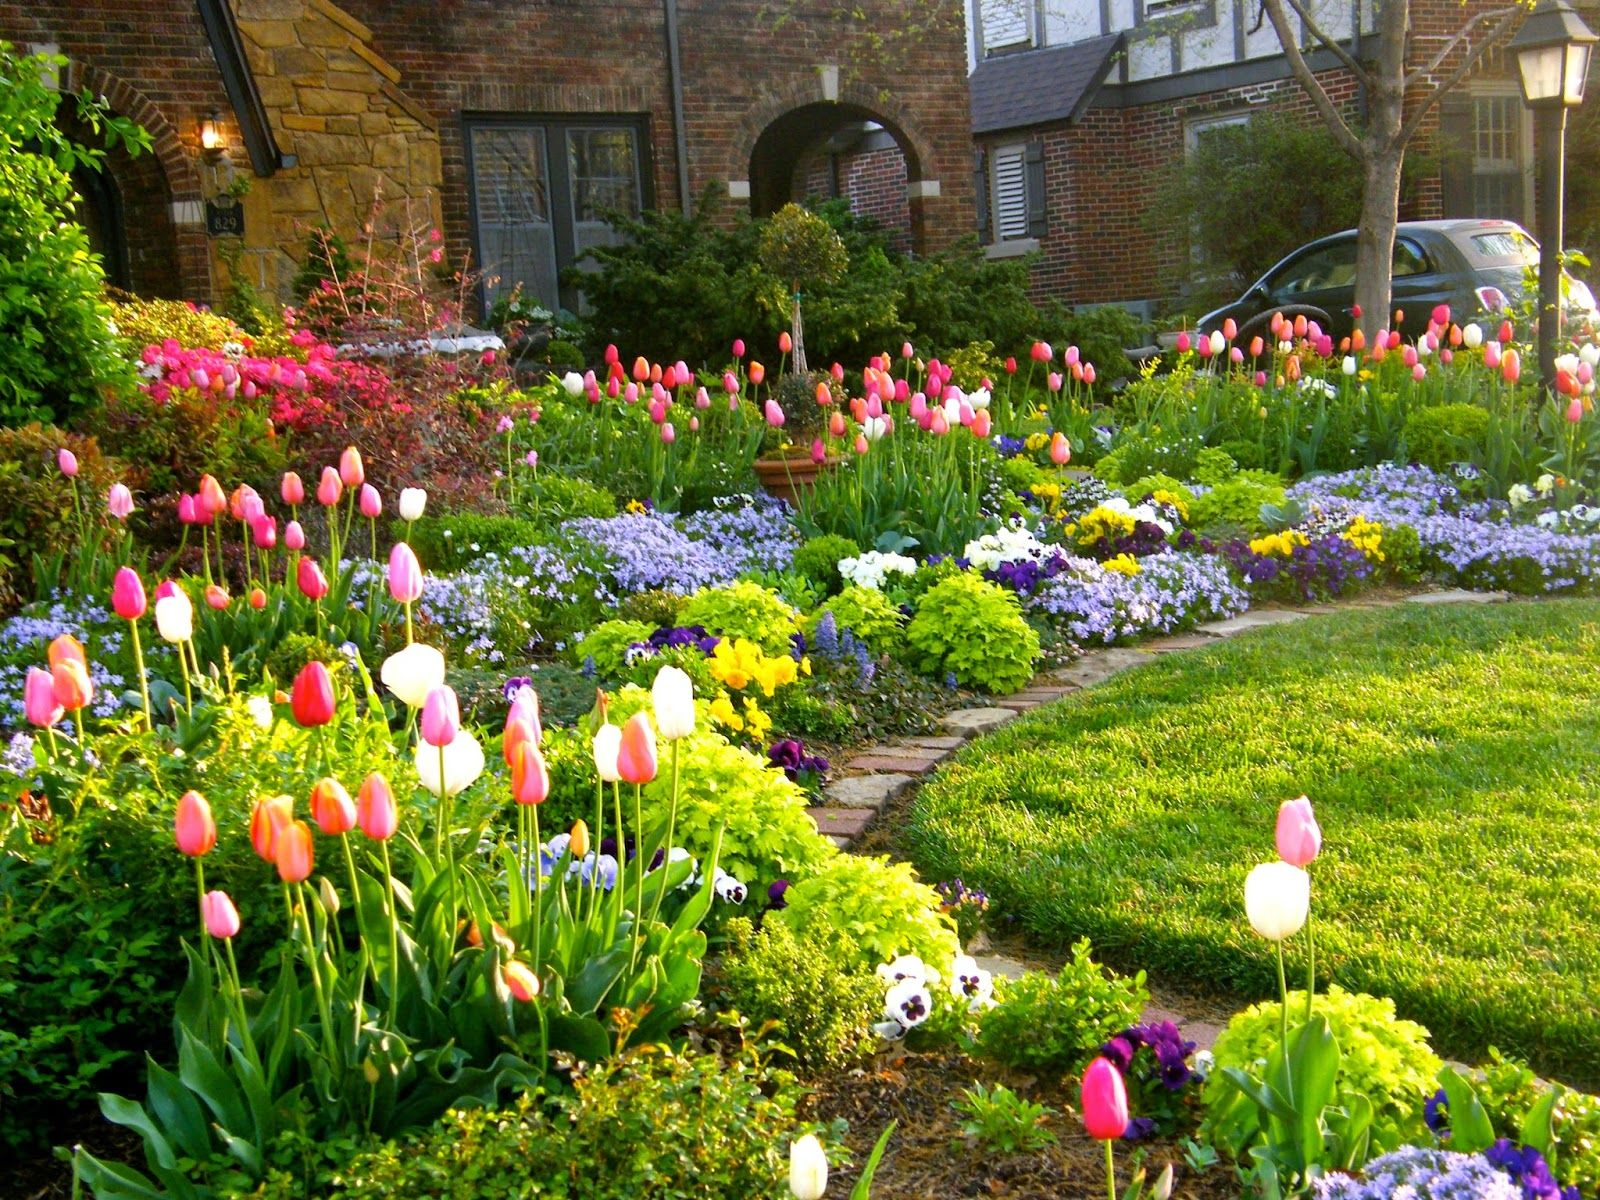 Tulip season front yard garden curb appeal flowers for Flower garden landscape